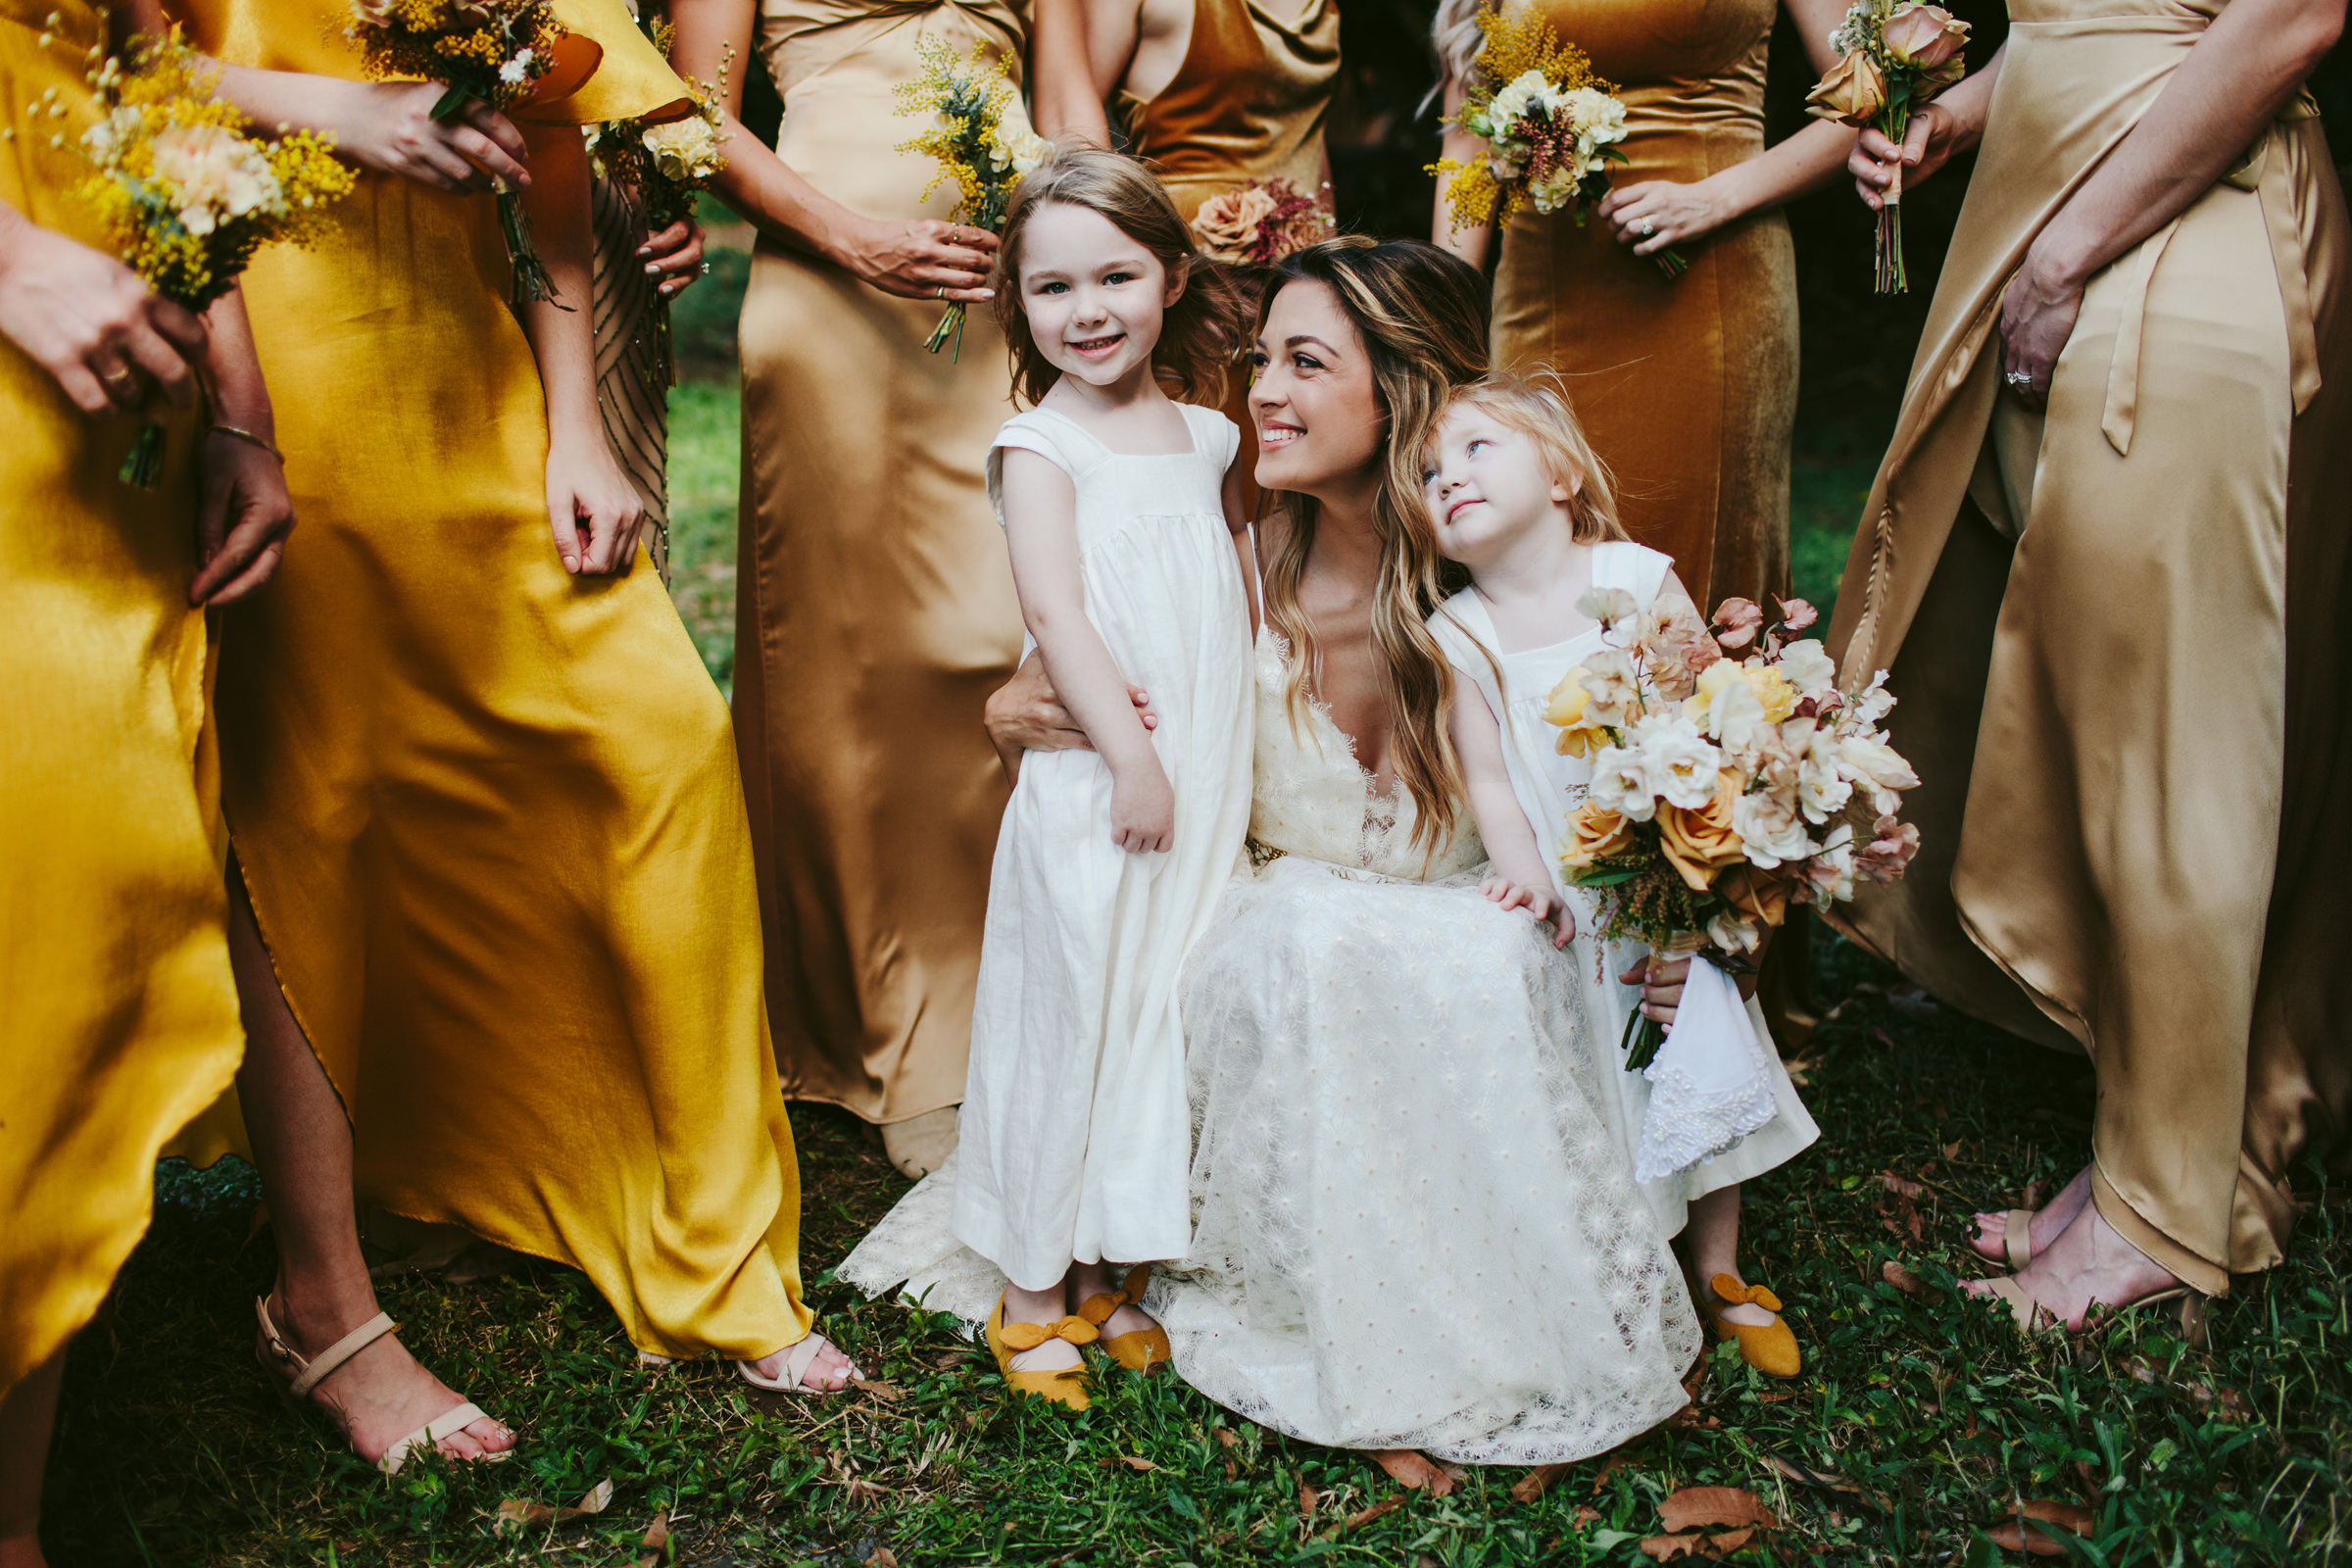 Bride and bridesmaids with little flower girls - photo by Melia Lucida